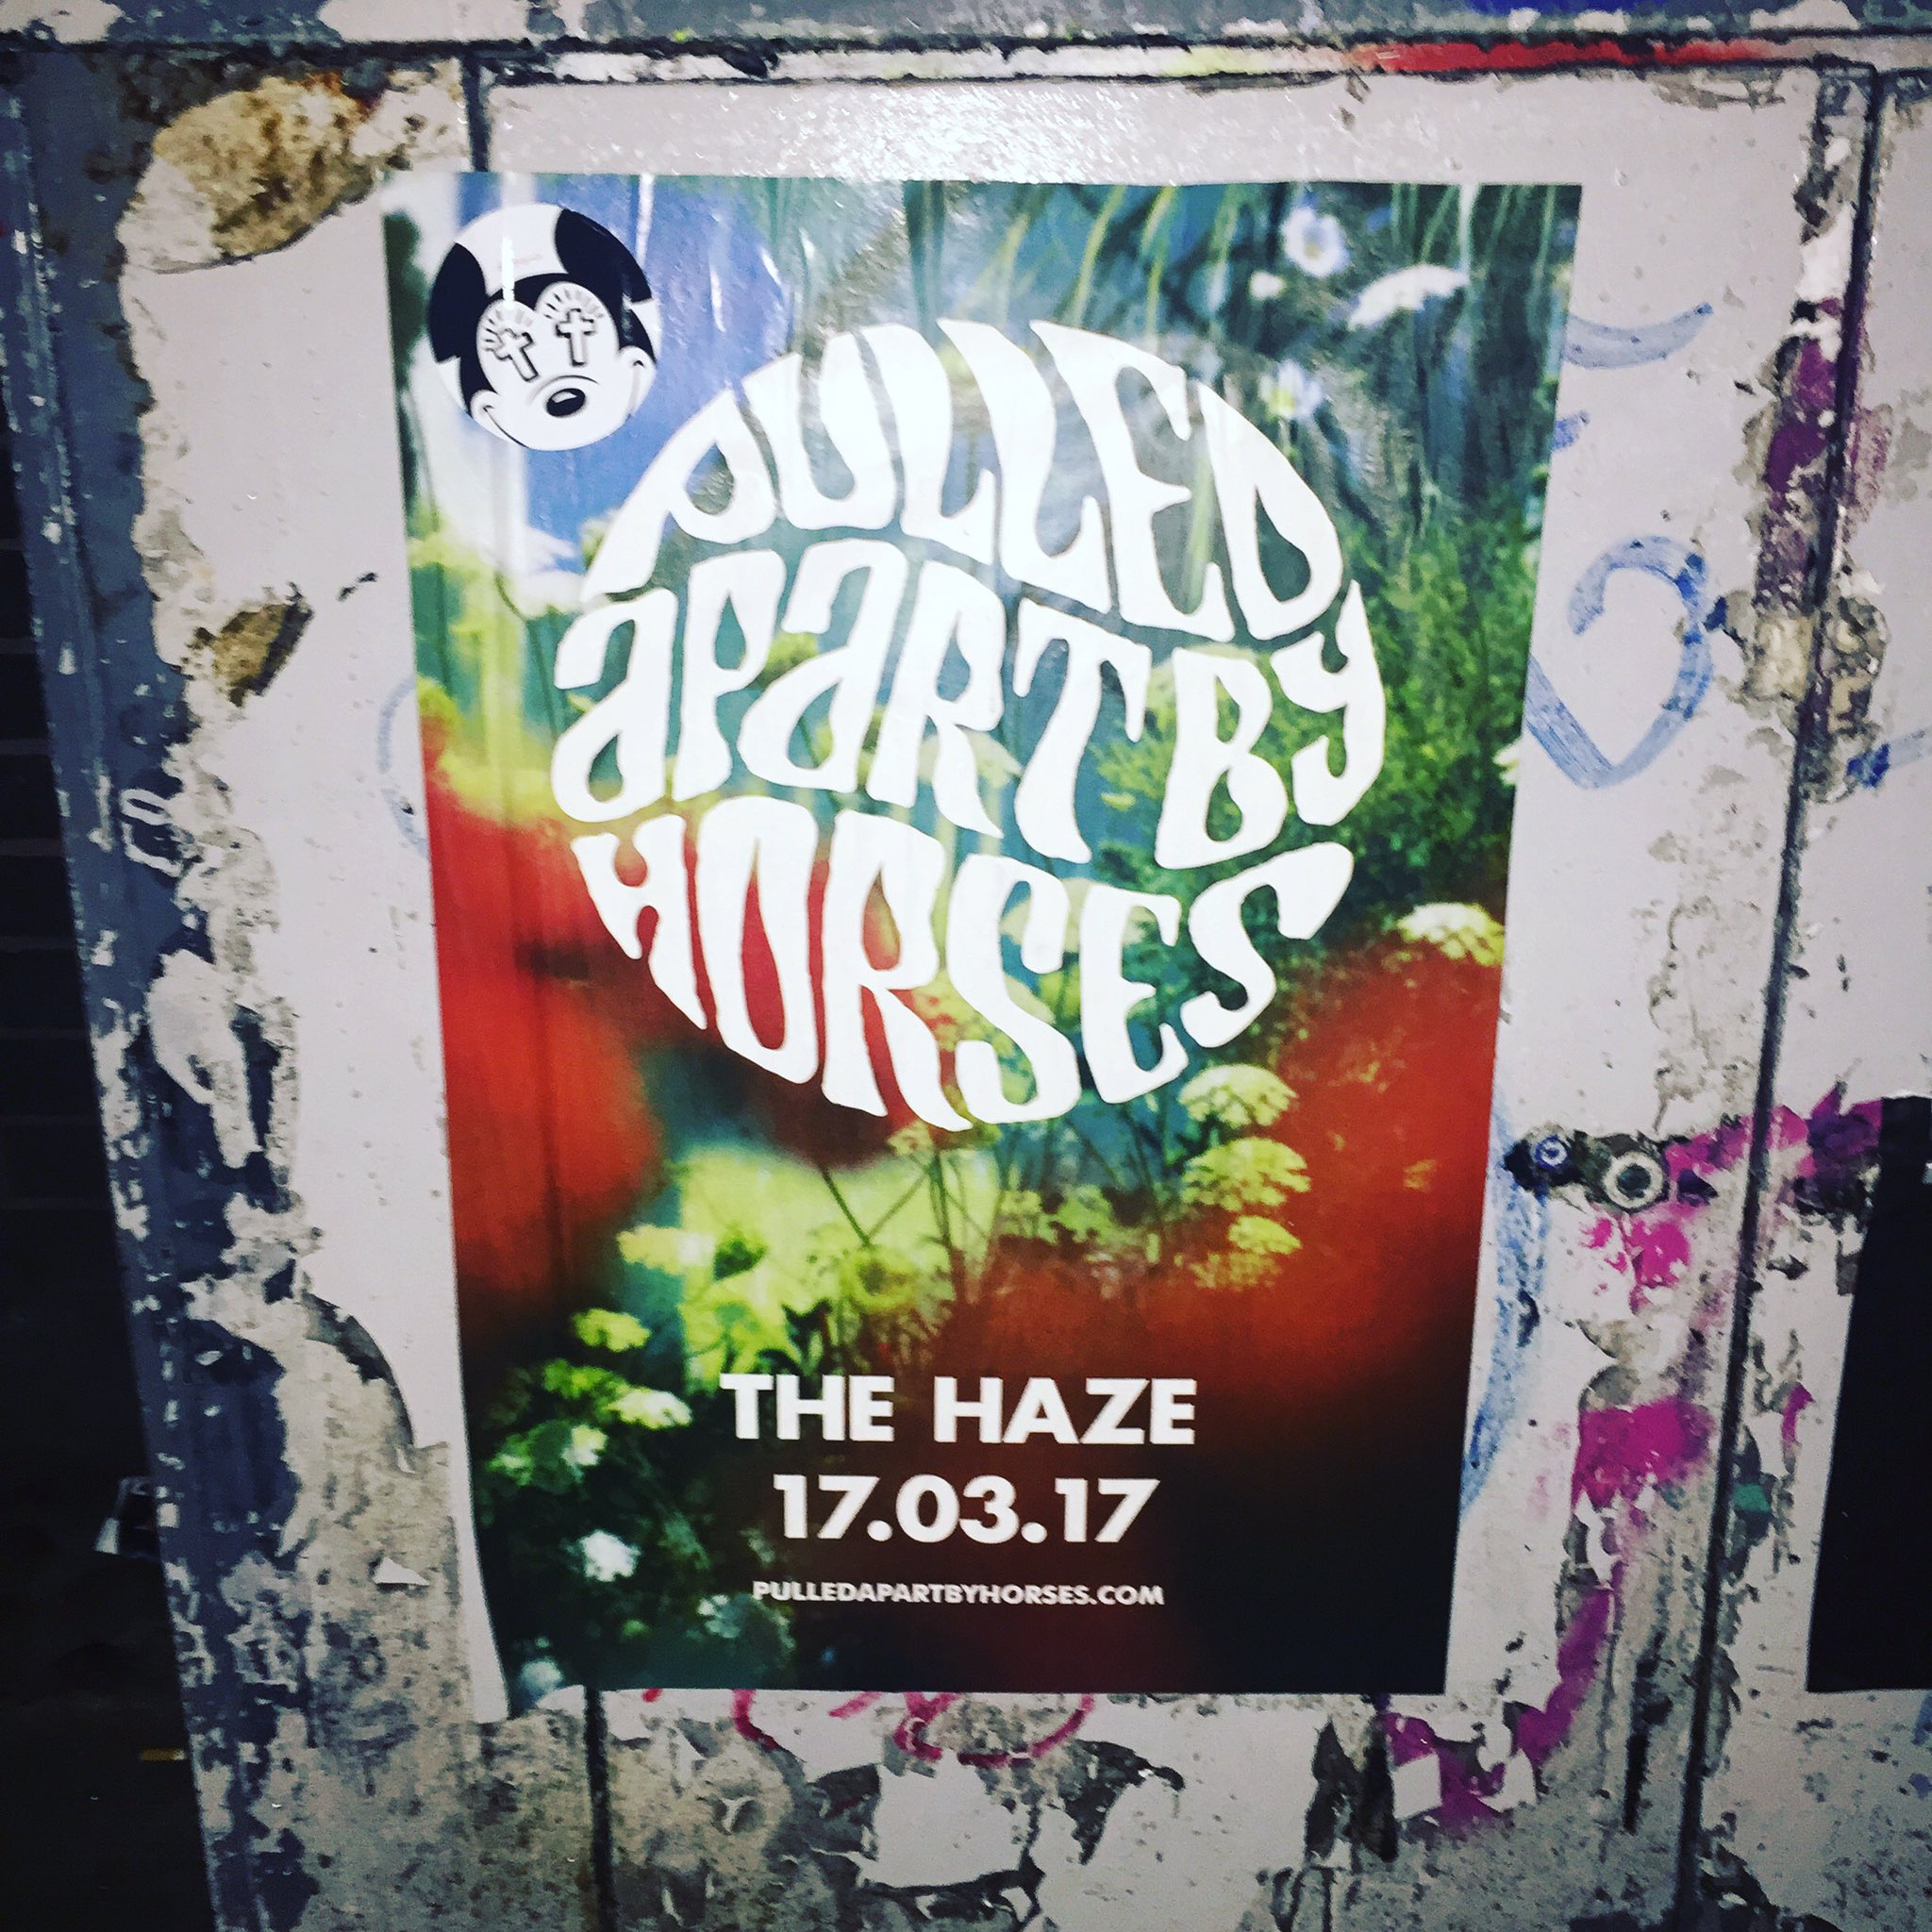 With an awesome new album, Pulled Apart by Horses join me on @BBCR1 tonight at 10.30pm @pabh https://t.co/rzDVF8Isxq